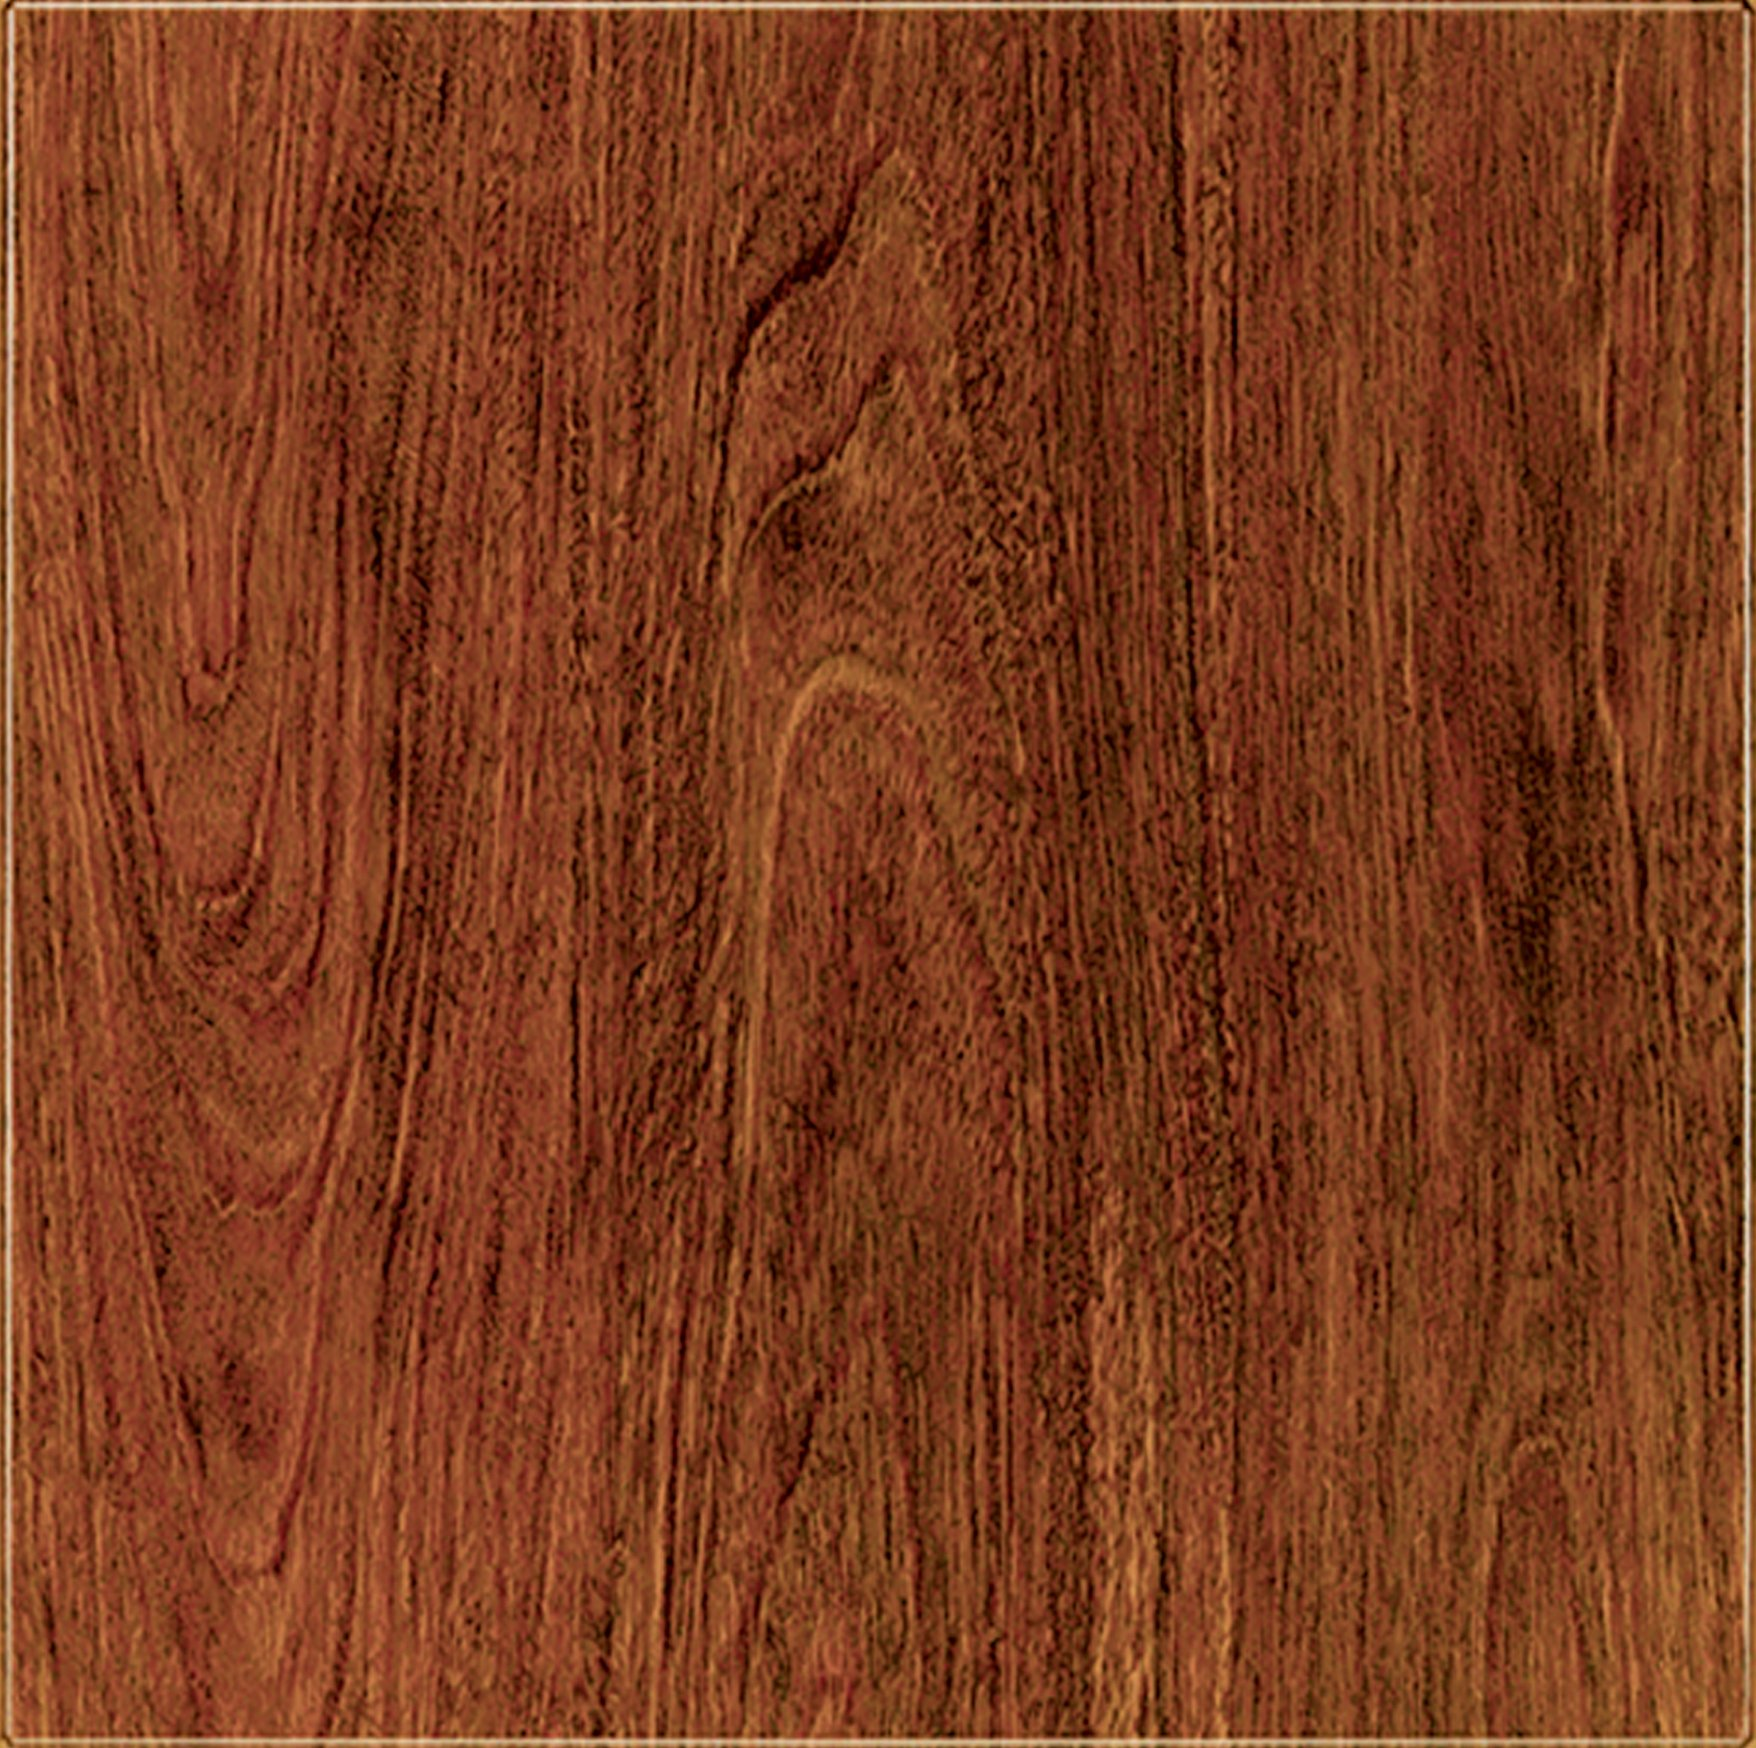 ATC Werzalit Wood-Look Table Top, 32'' L x 48'' W, New Mahogany (Pack of 2)